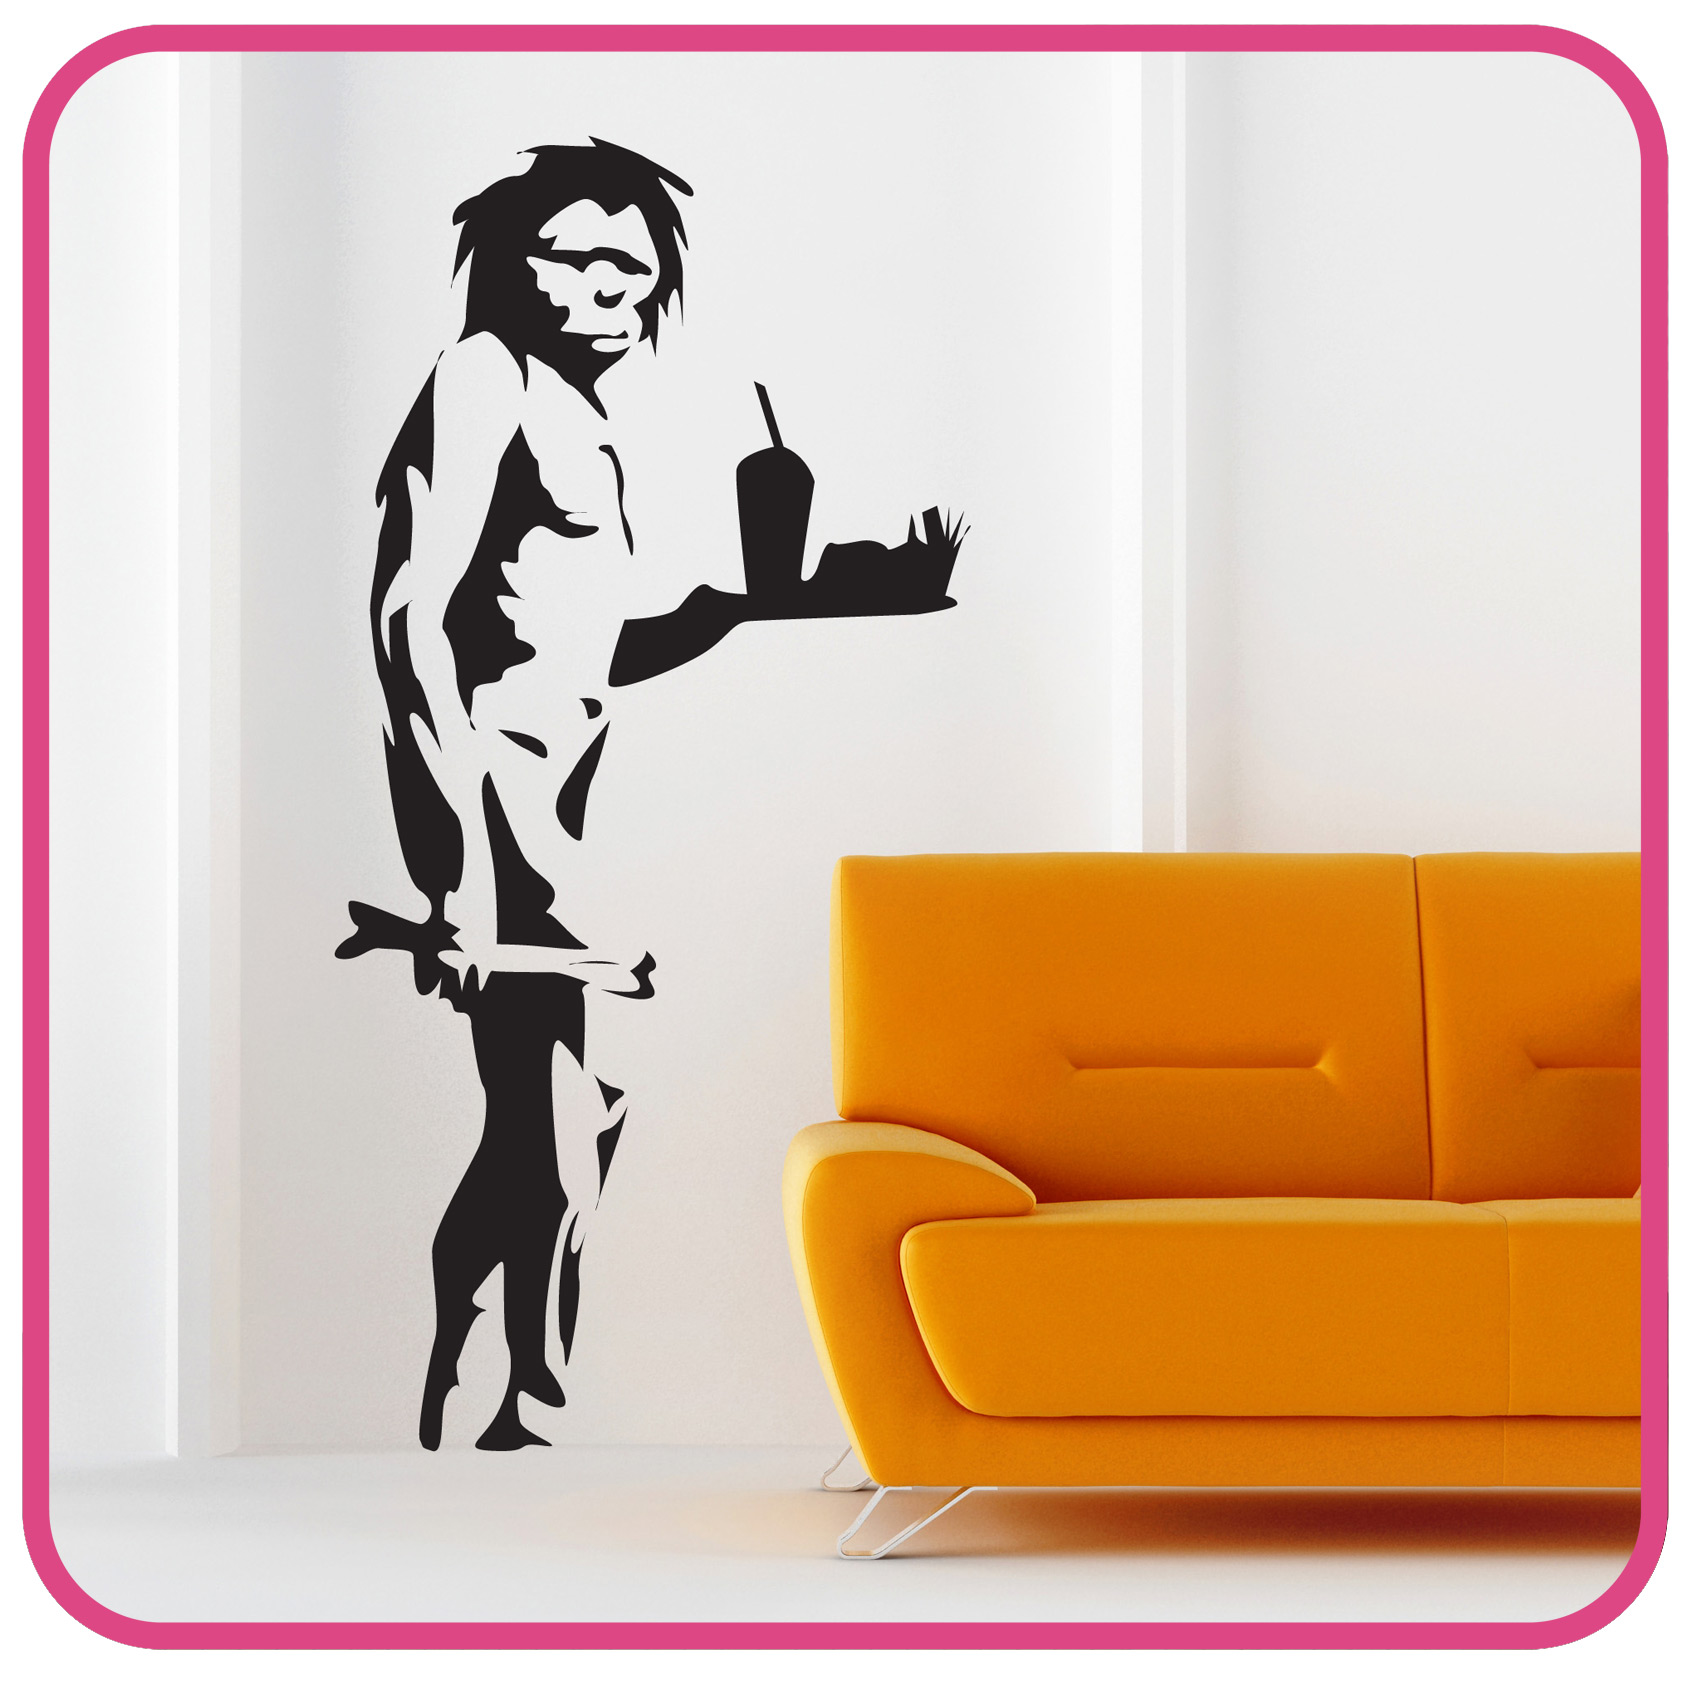 banksy style caveman takeaway wall sticker decals please use the dropdown tab at the top of the page to select your colour and size requirements